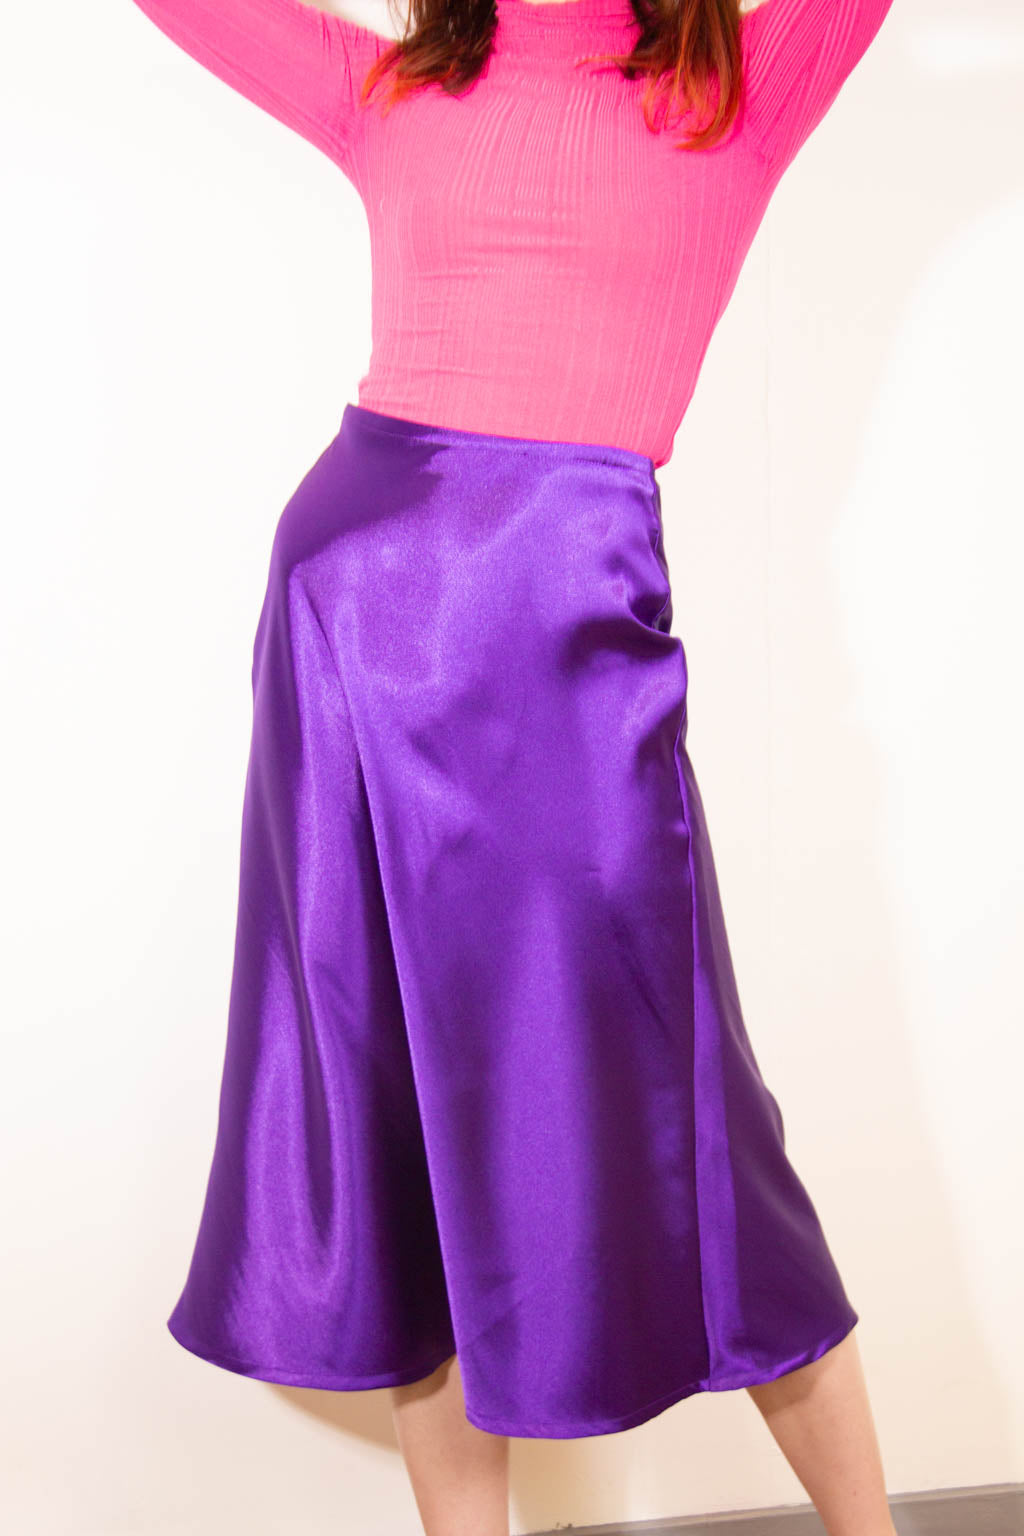 The Faith Skirt in Purple Satin